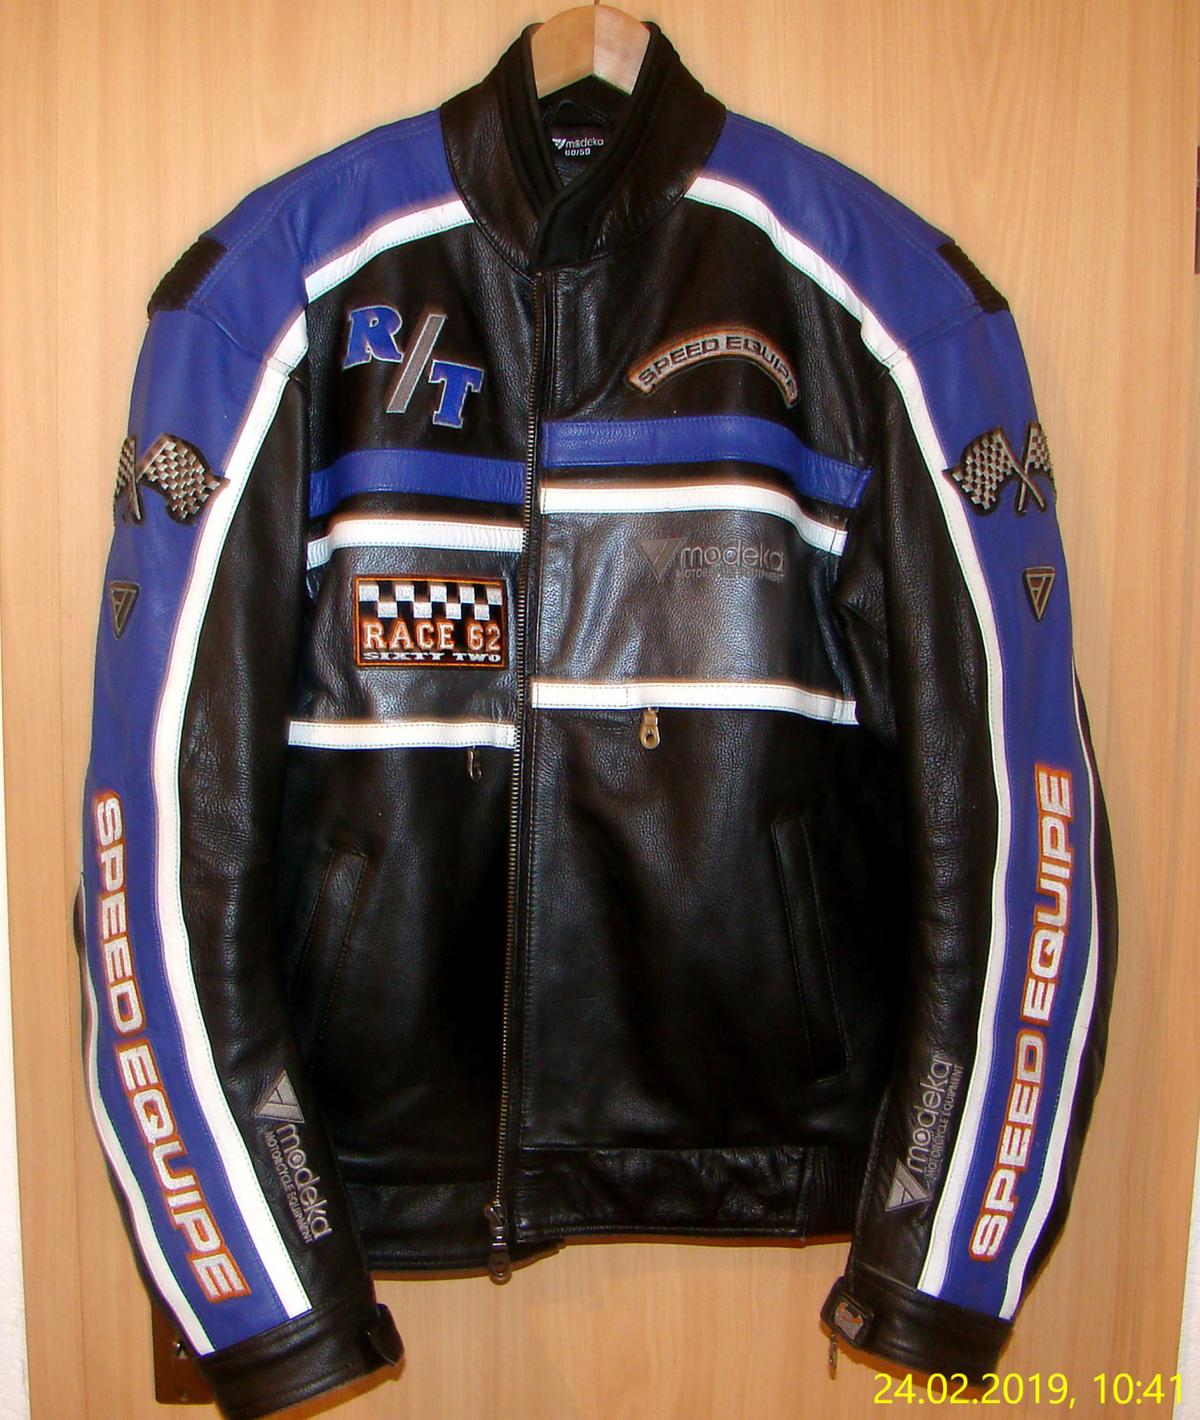 MODEKA SPEED EQUIPE JACKE in 53945 Blankenheim for €120.00